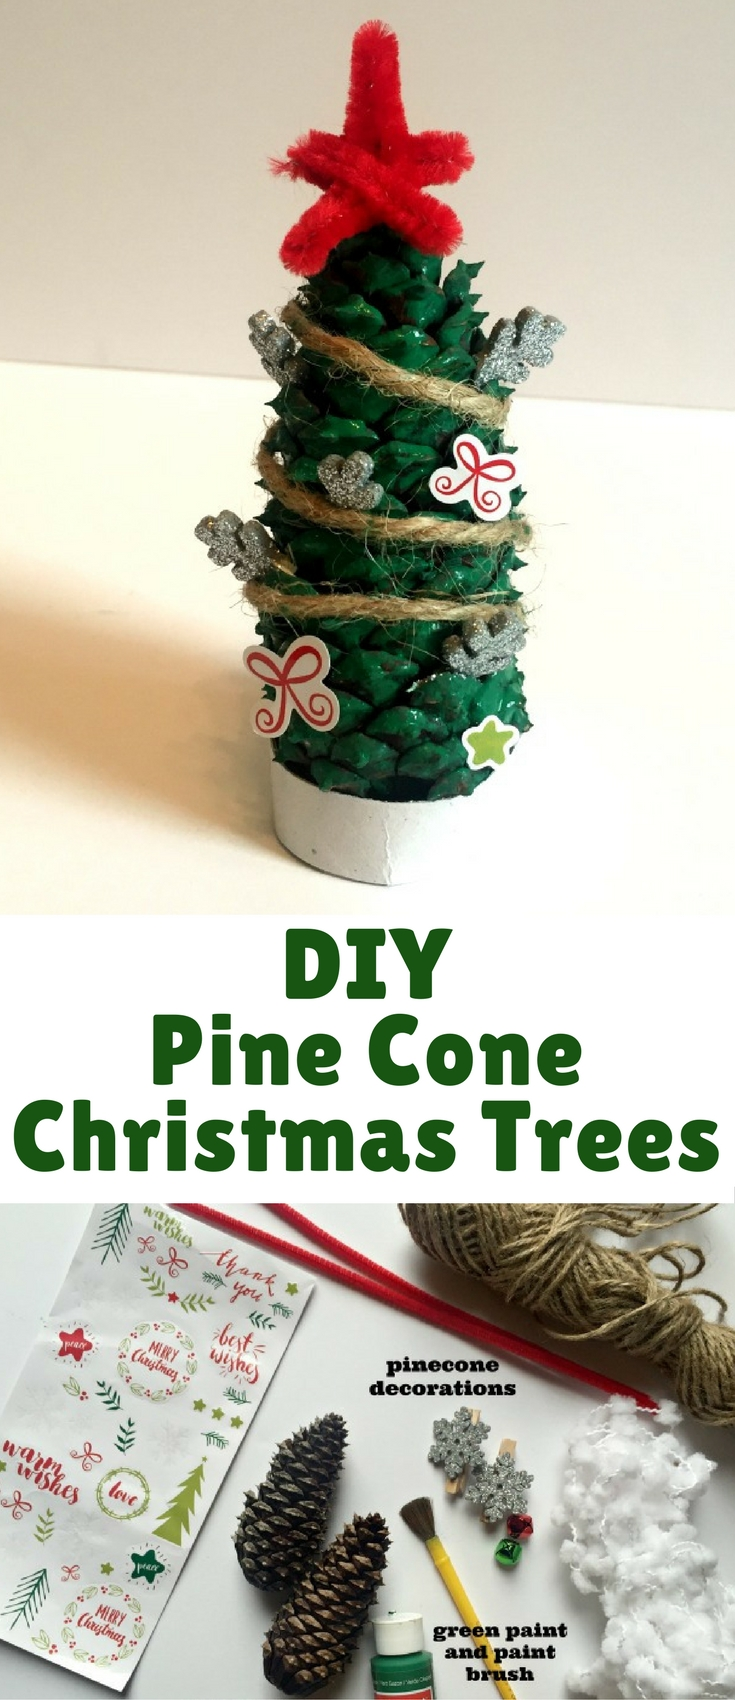 This Pine Cone Christmas Tree craft is so easy to make and a lot of fun as well.